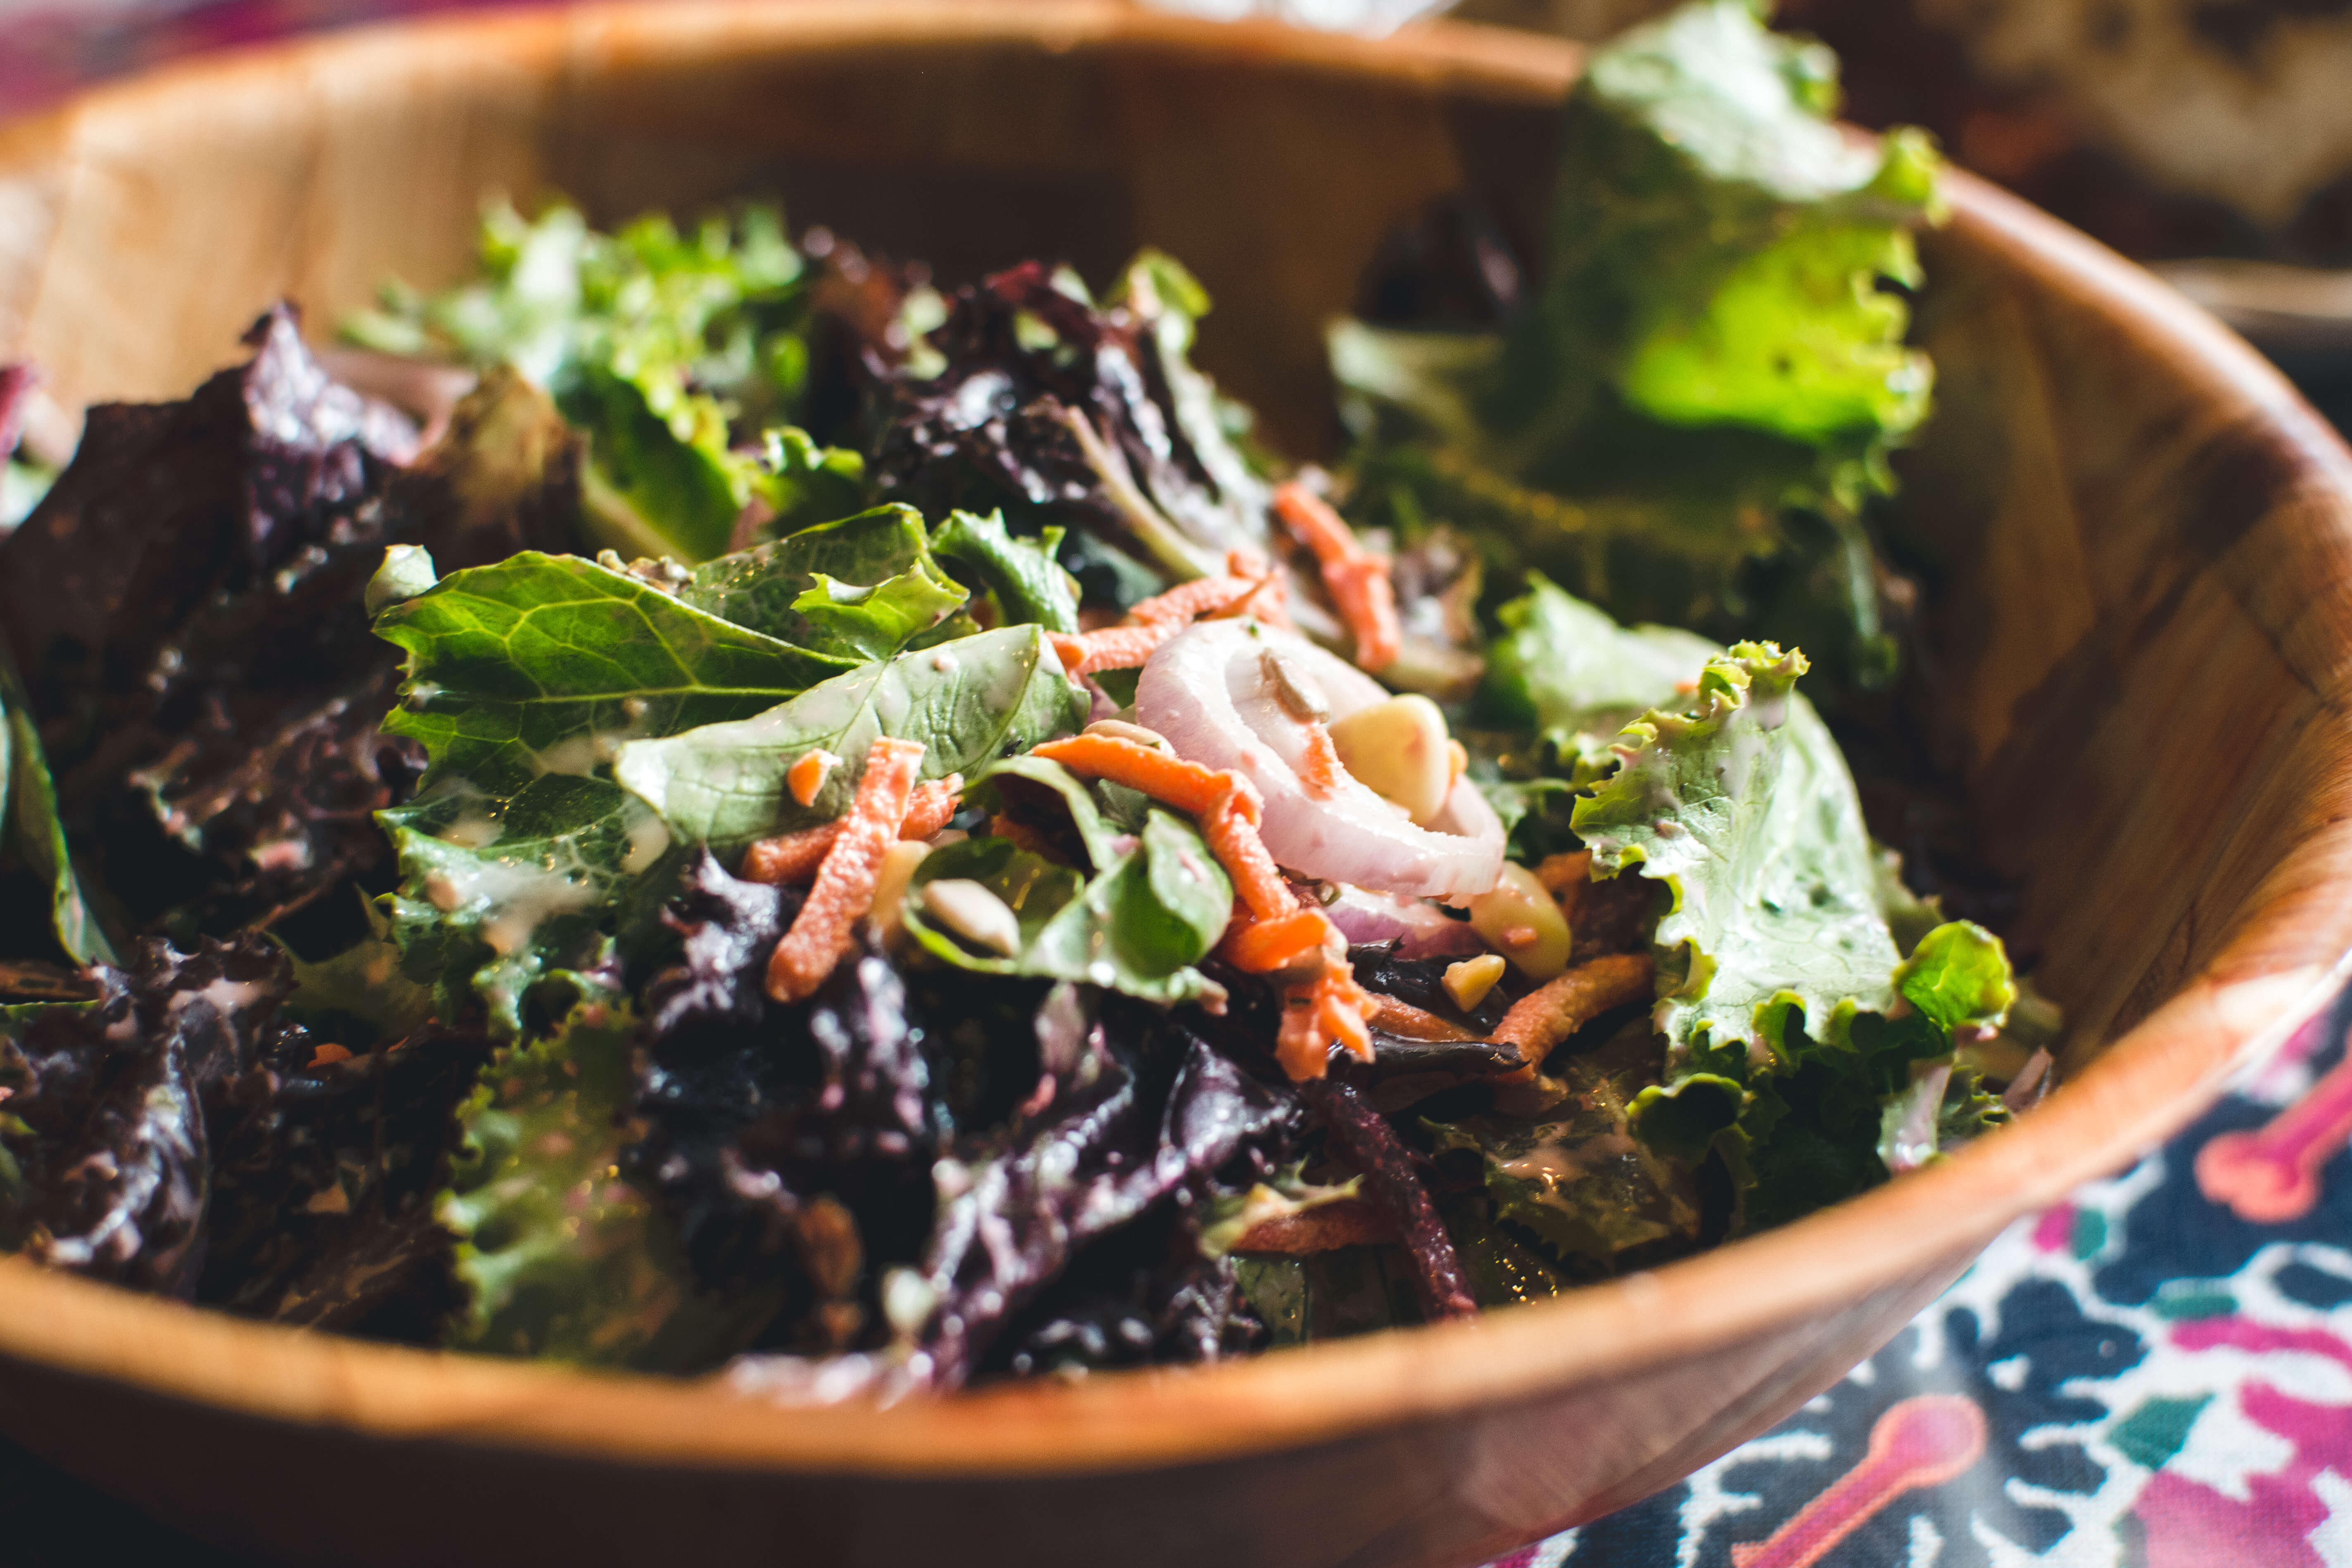 Romaine Calm: Mix Up Your Salad with Some Lettuce Varieties